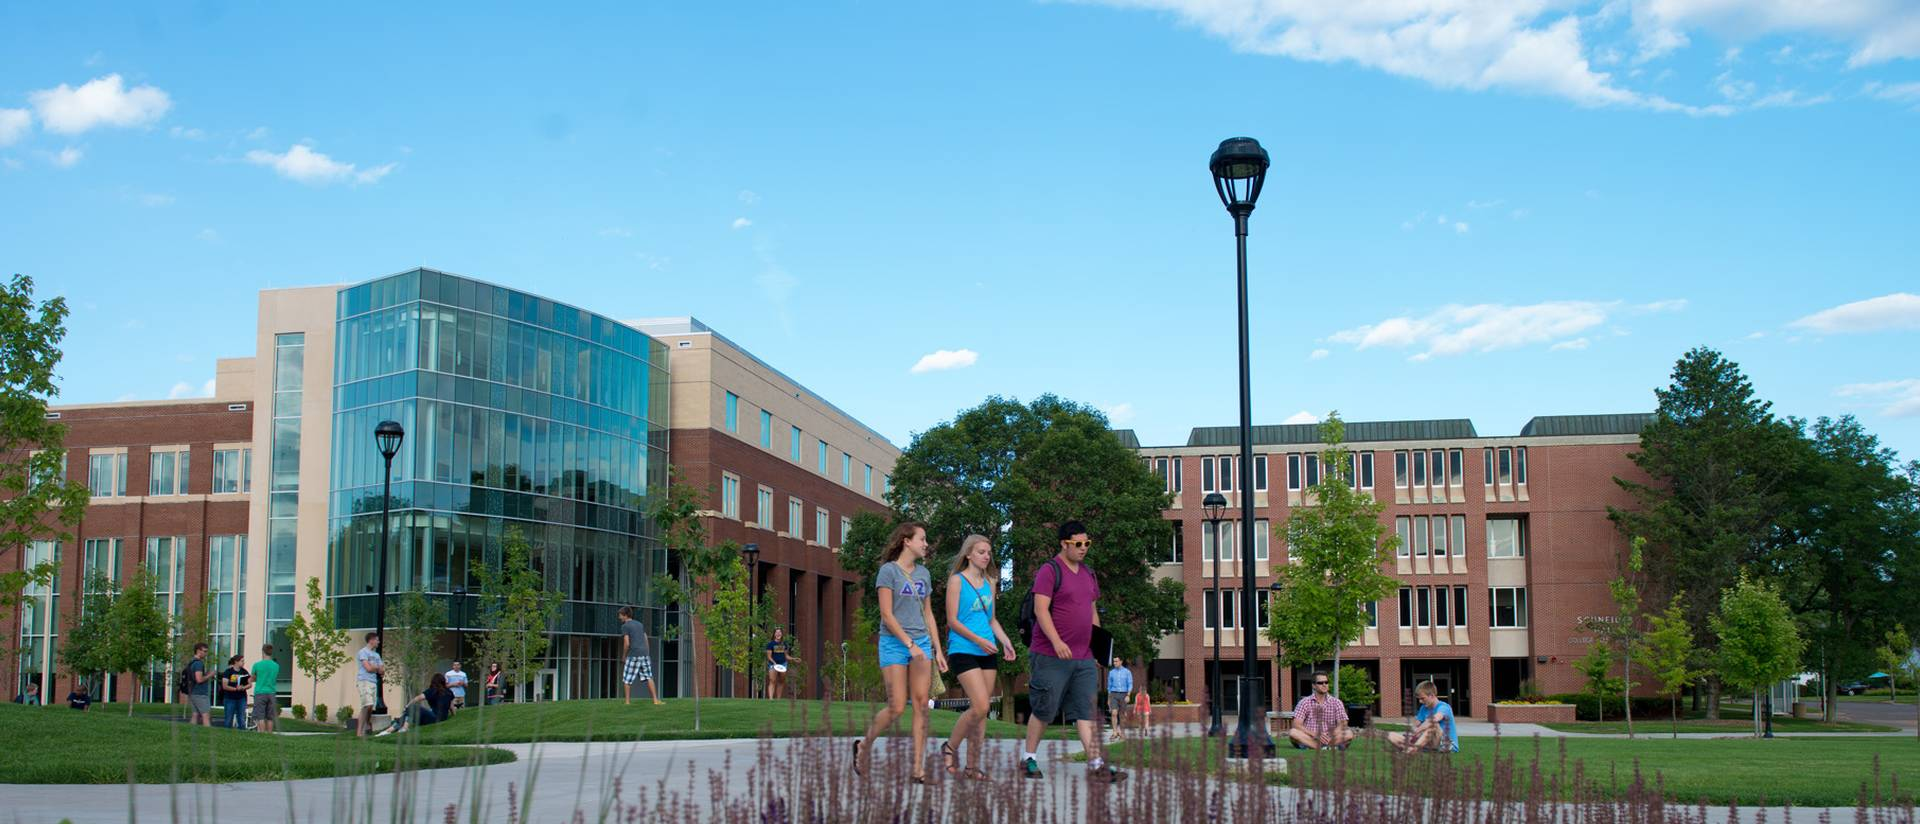 Centennial Hall and students outdoors